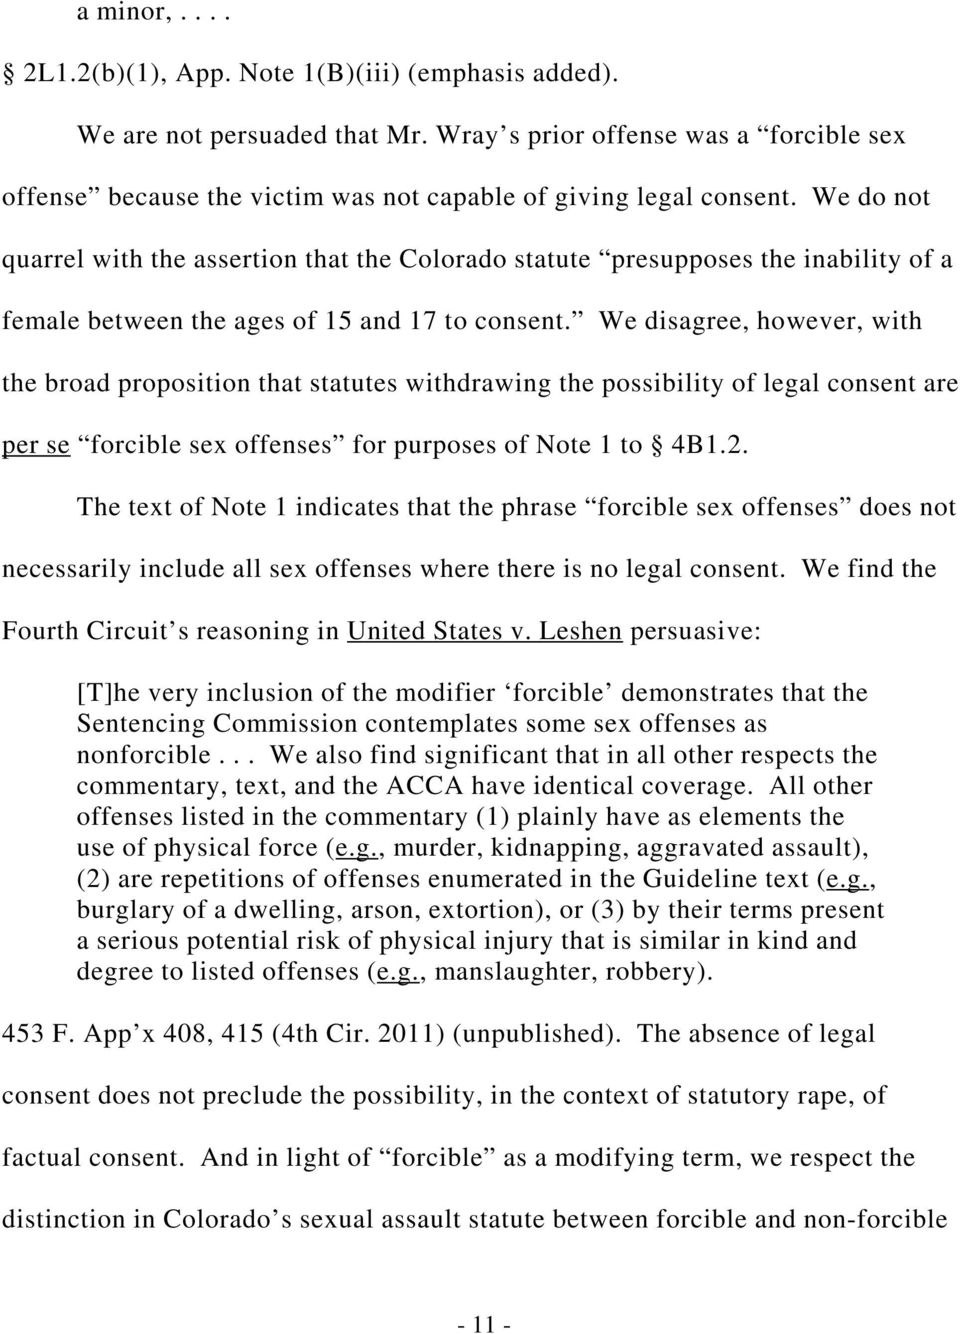 We do not quarrel with the assertion that the Colorado statute presupposes the inability of a female between the ages of 15 and 17 to consent.